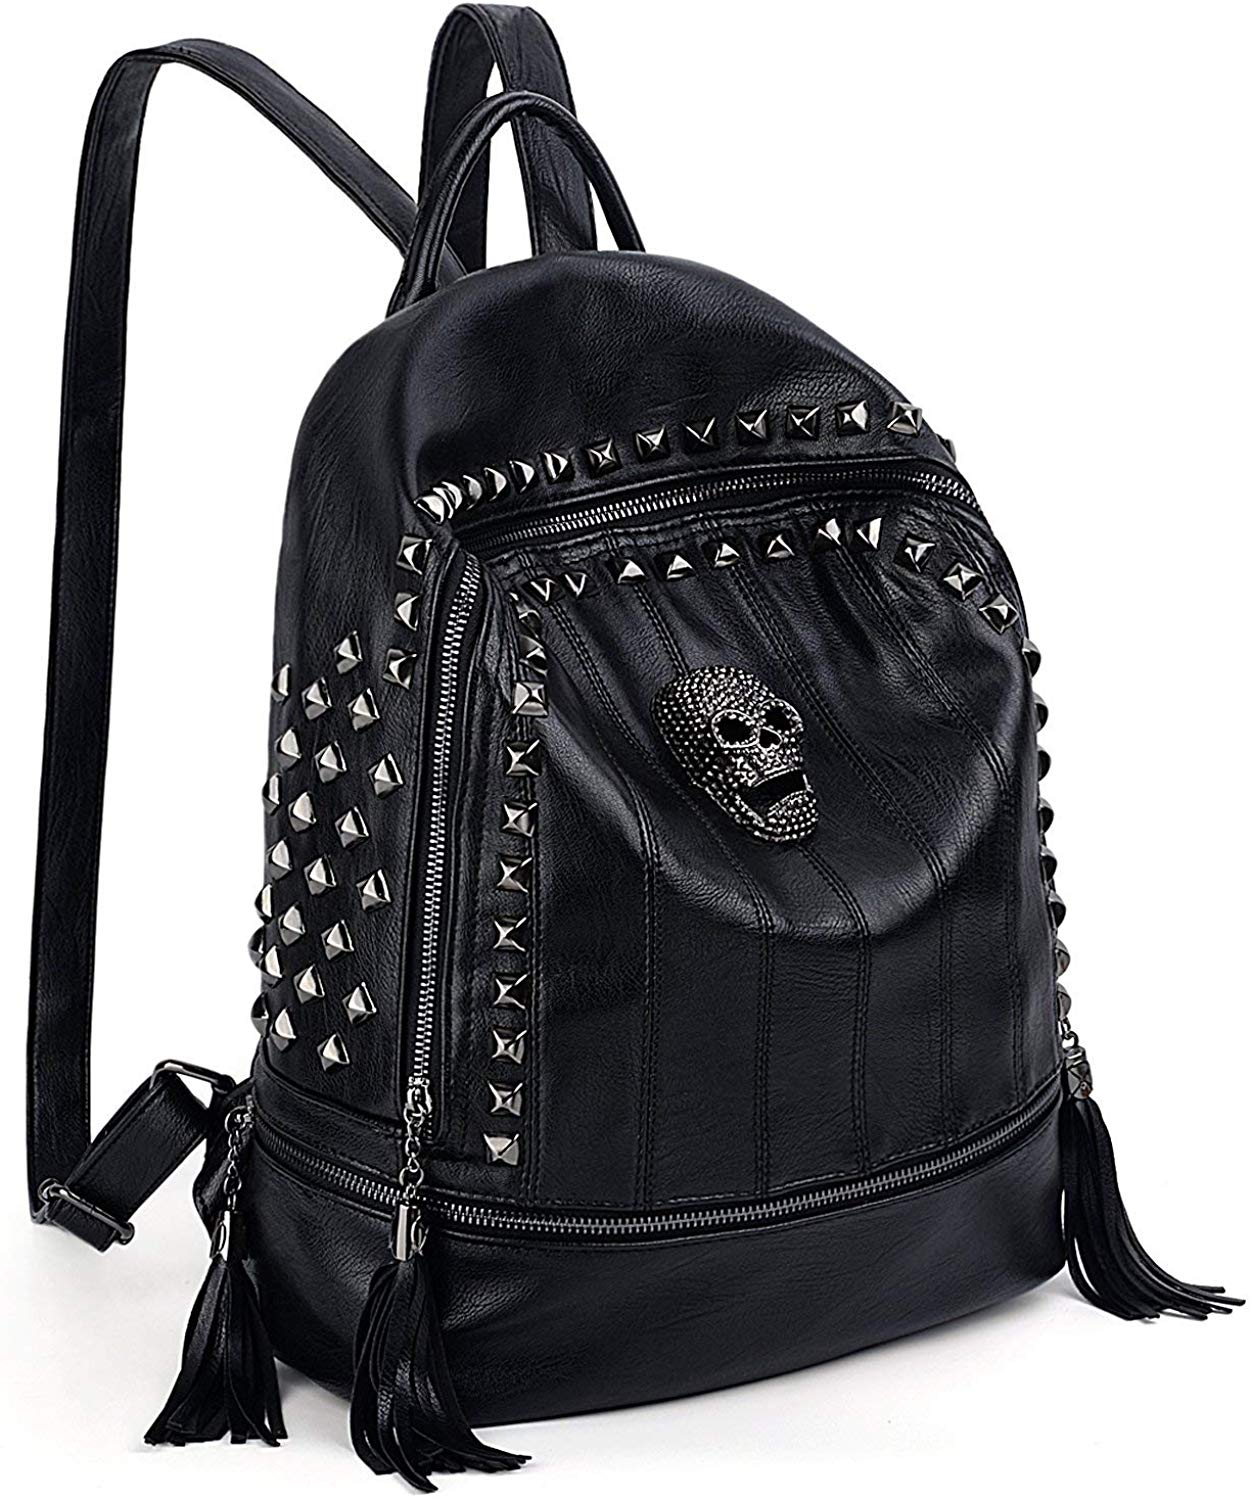 Women Skull Backpack Rivet Studded Fashion Daypack Gothic Purse Tassel Zipper title=